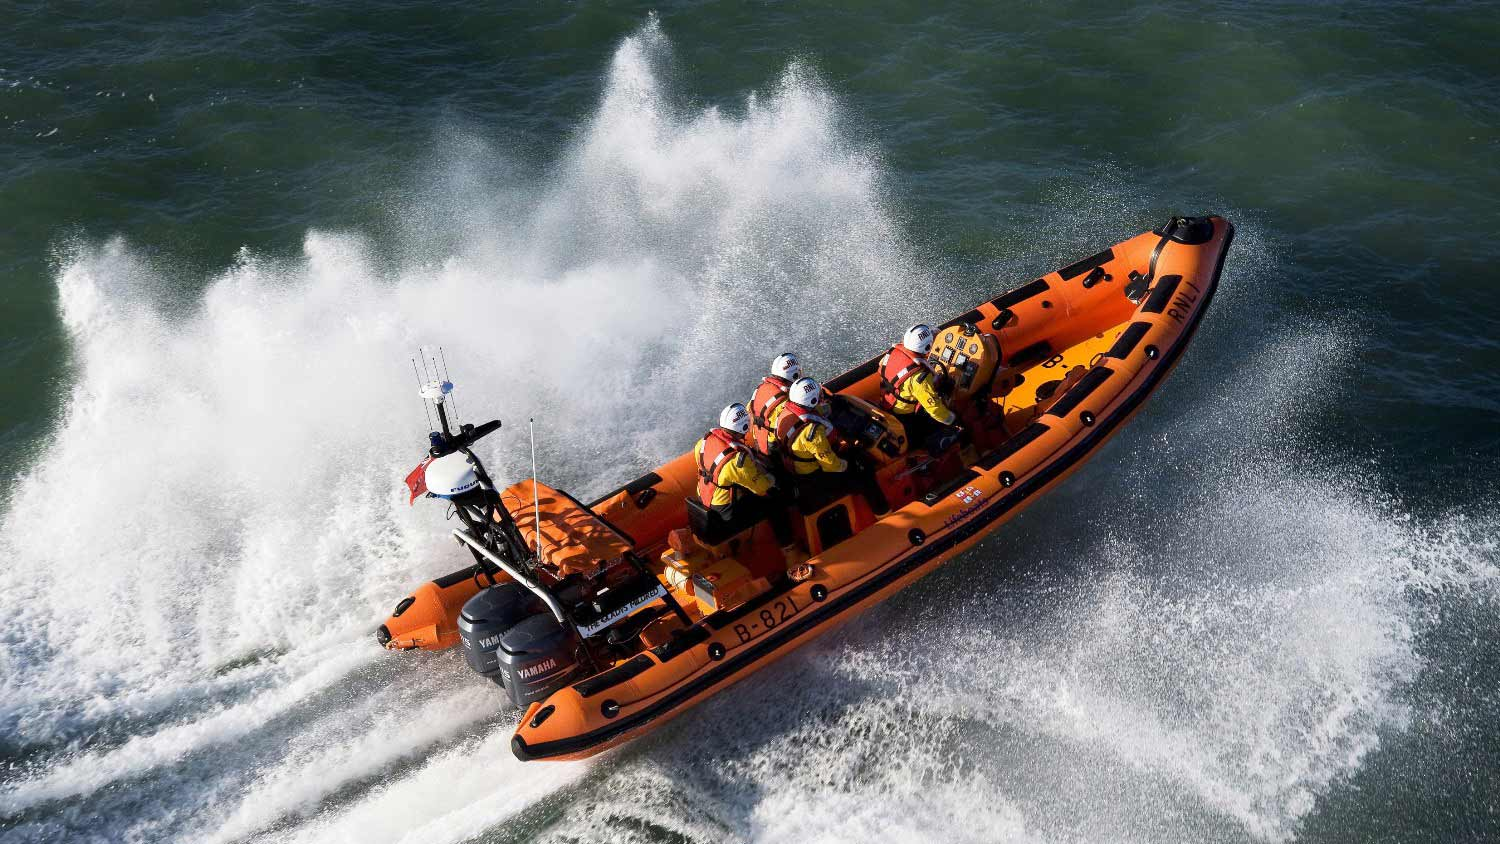 Newquay lifeboat volunteers onboard their B class Atlantic 85 lifeboat, The Gladys Mildred B-821